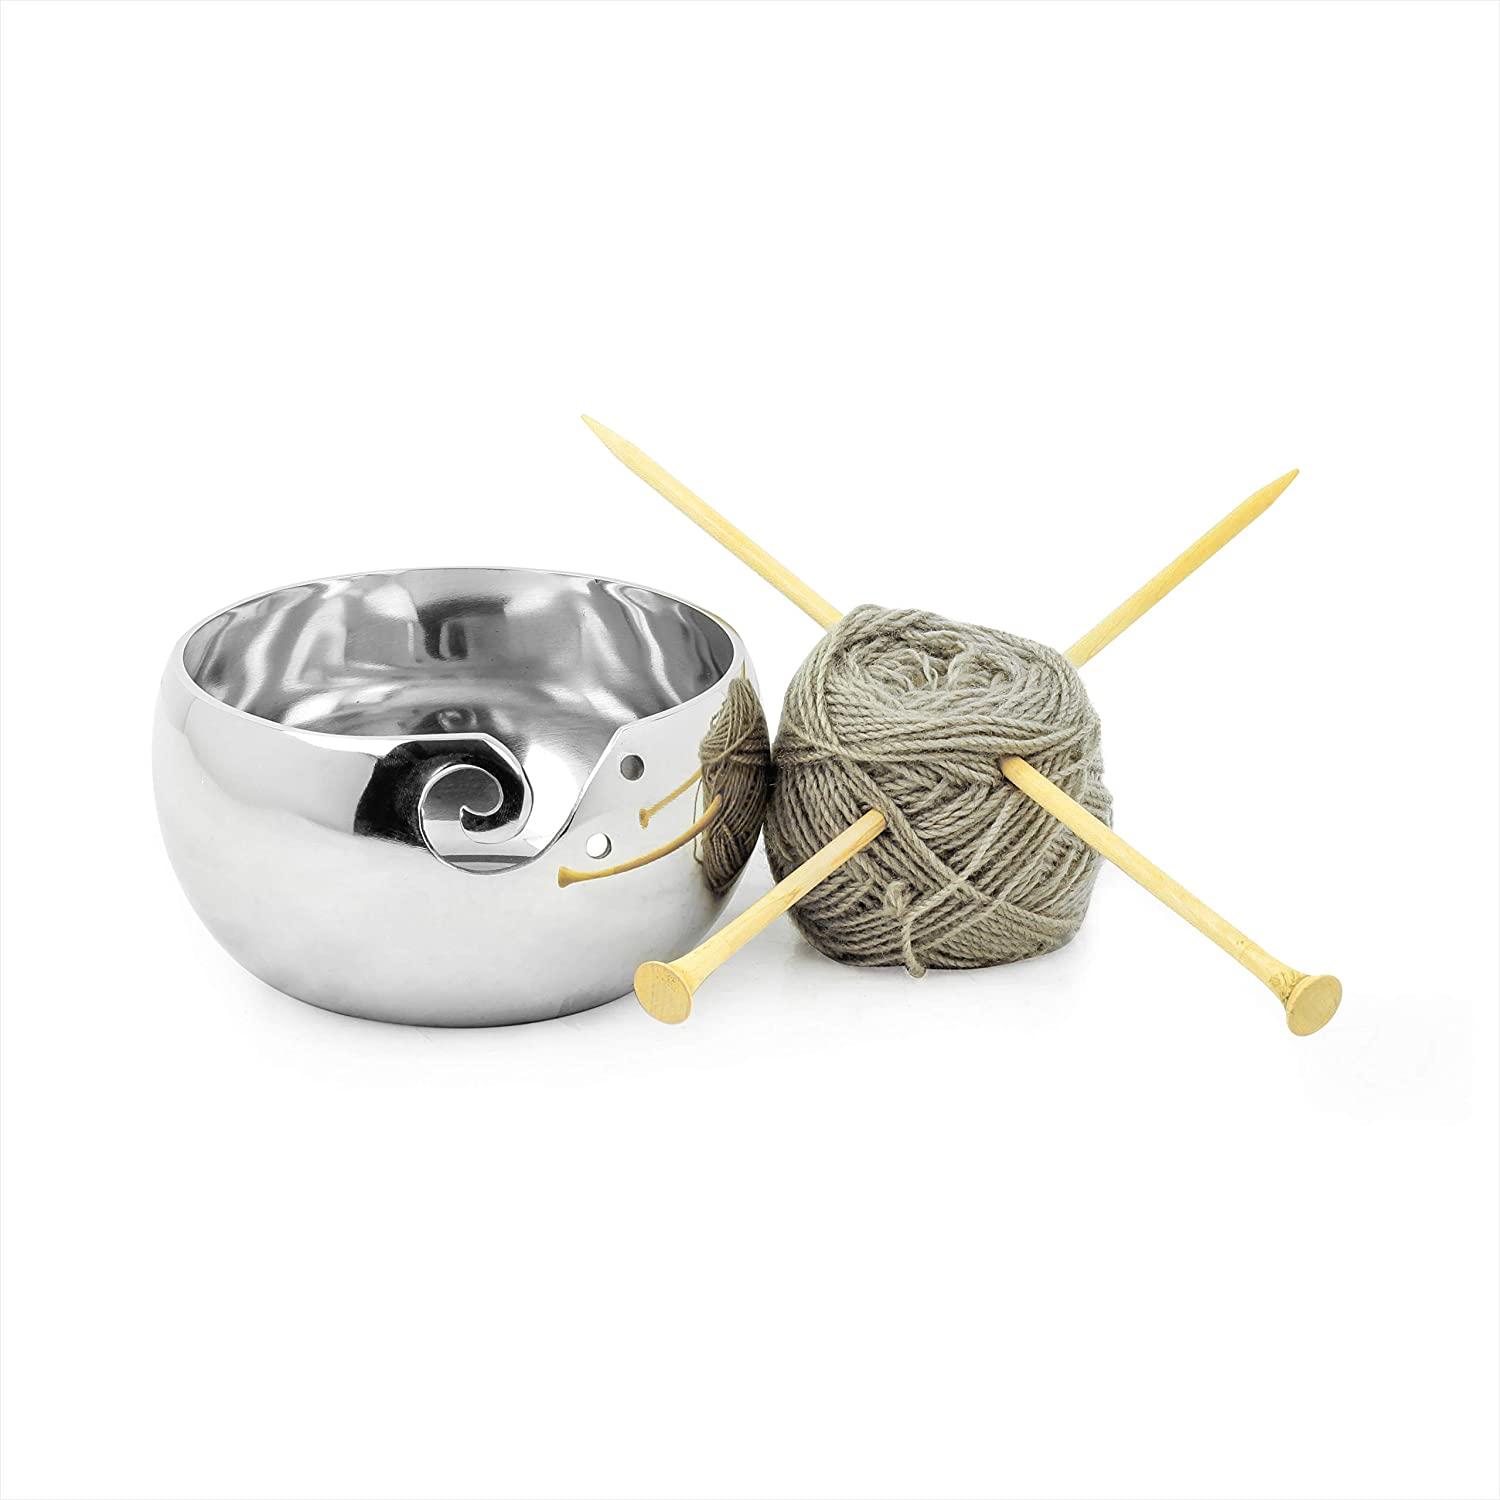 Opulent Silversmith Unbreakable Aluminum Metal Yarn Storage Bowl Nickel Plated for Skeins Hanks & Balls | Knitting & Crochet Notions | Nagina International (Small, Aluminum)